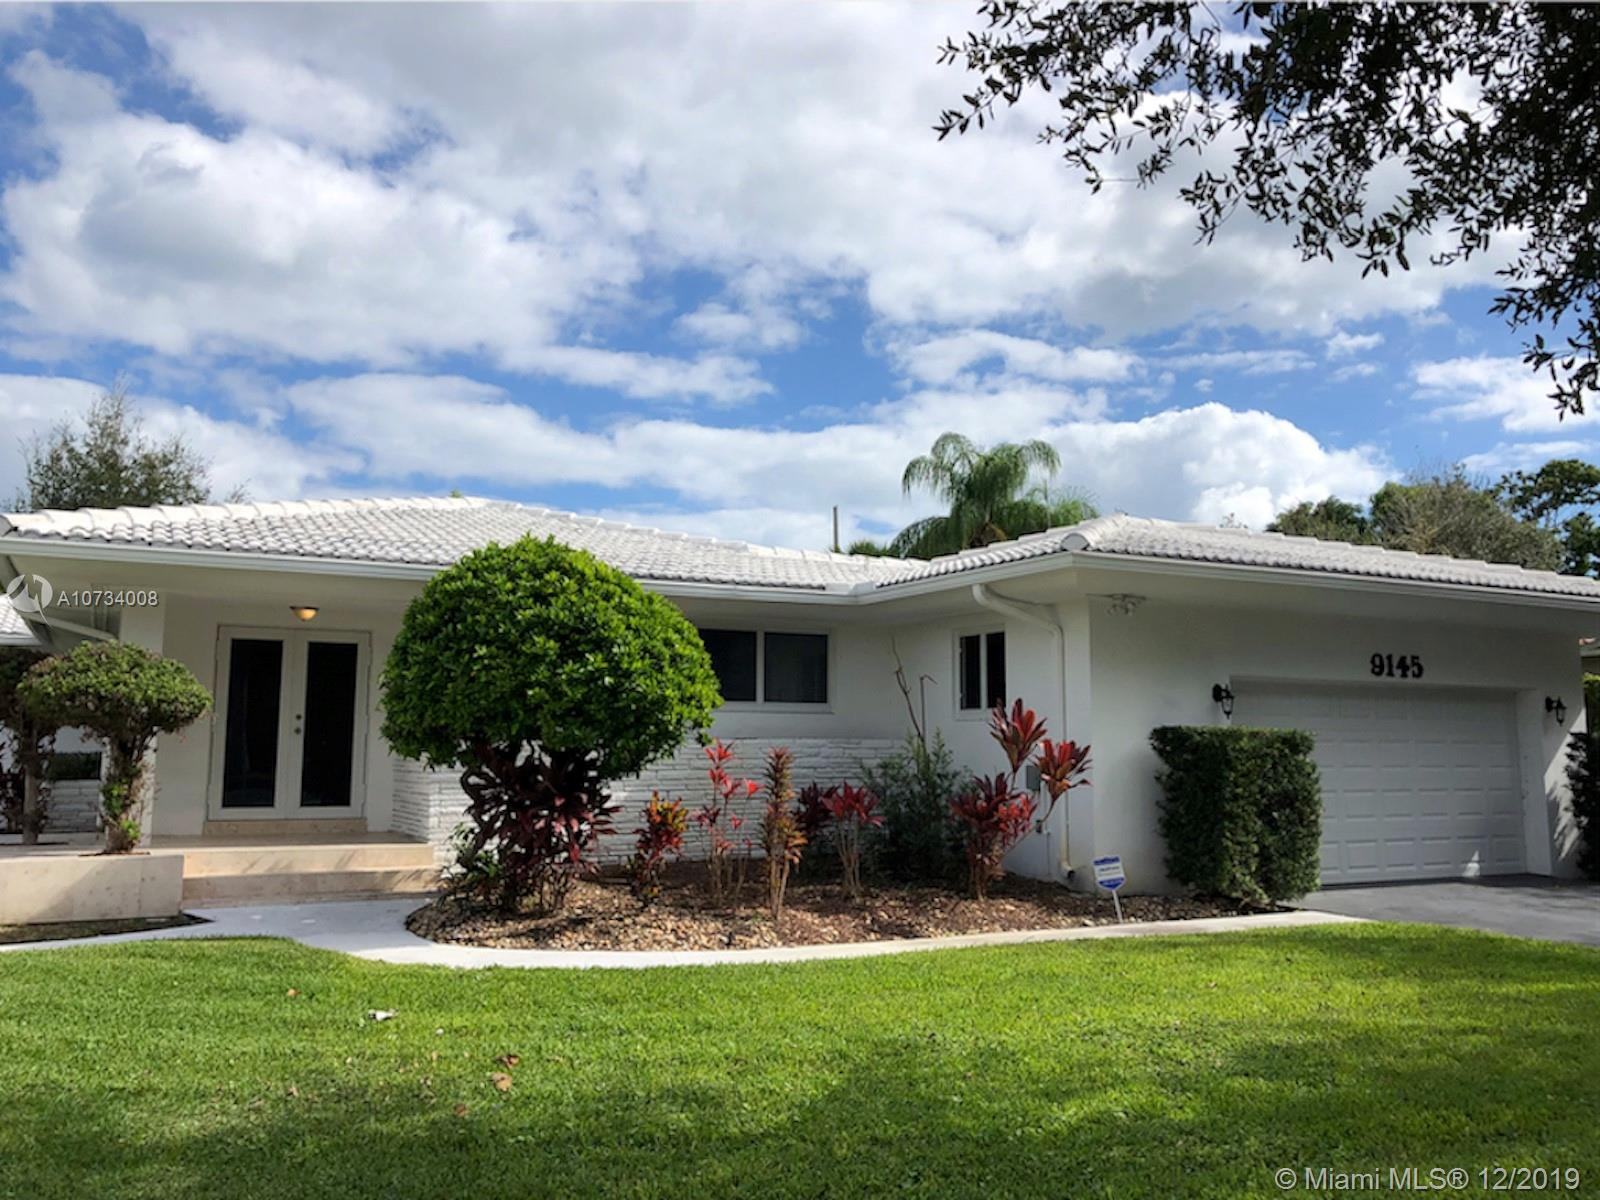 9145 N Miami Ave, Miami Shores, Florida